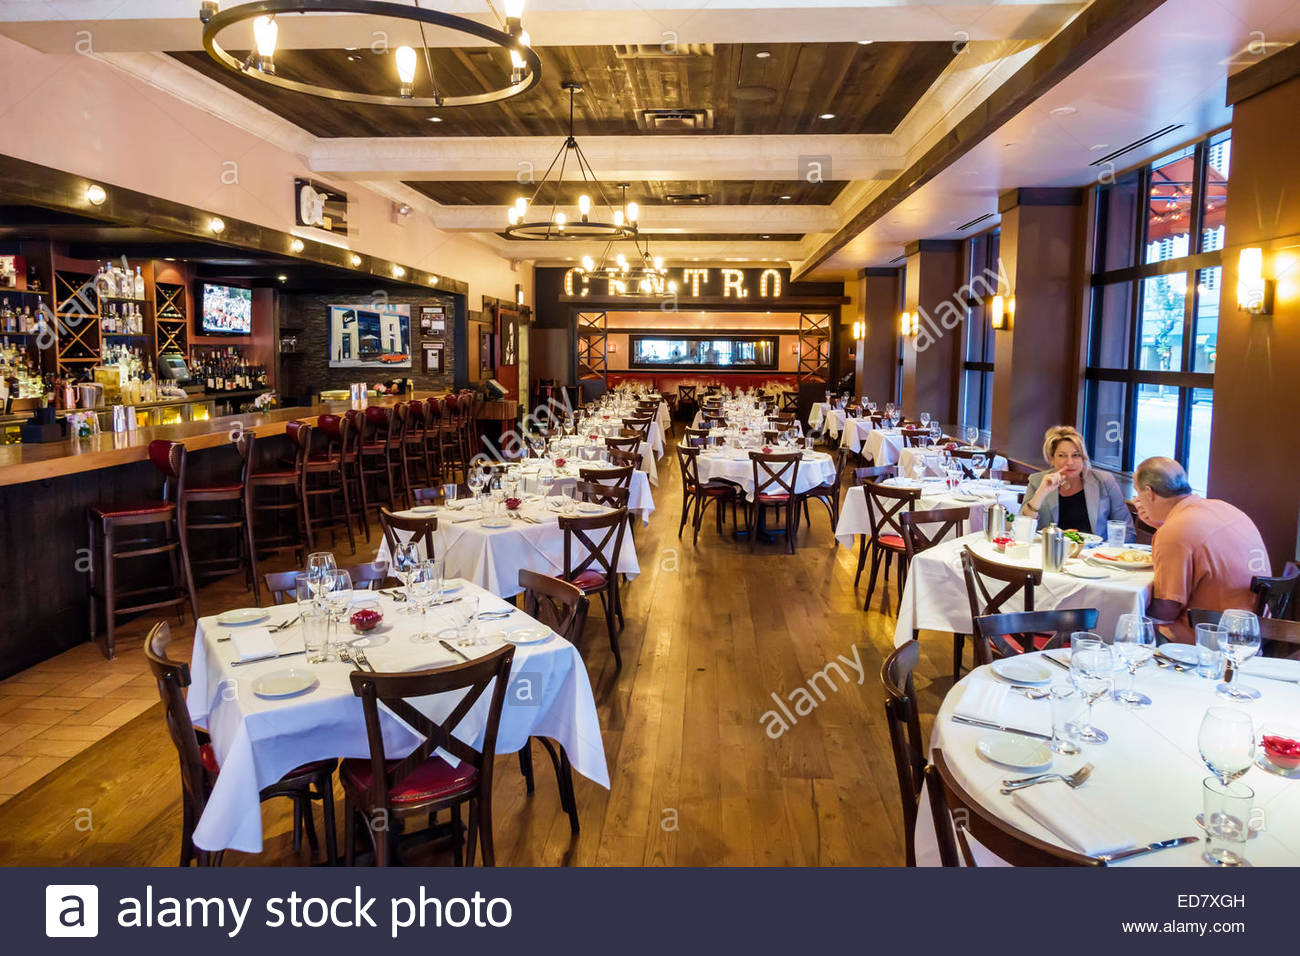 Chicago Illinois River North downtown Centro Ristorante restaurant italien à l'intérieur vide de l'intérieur Photo Stock